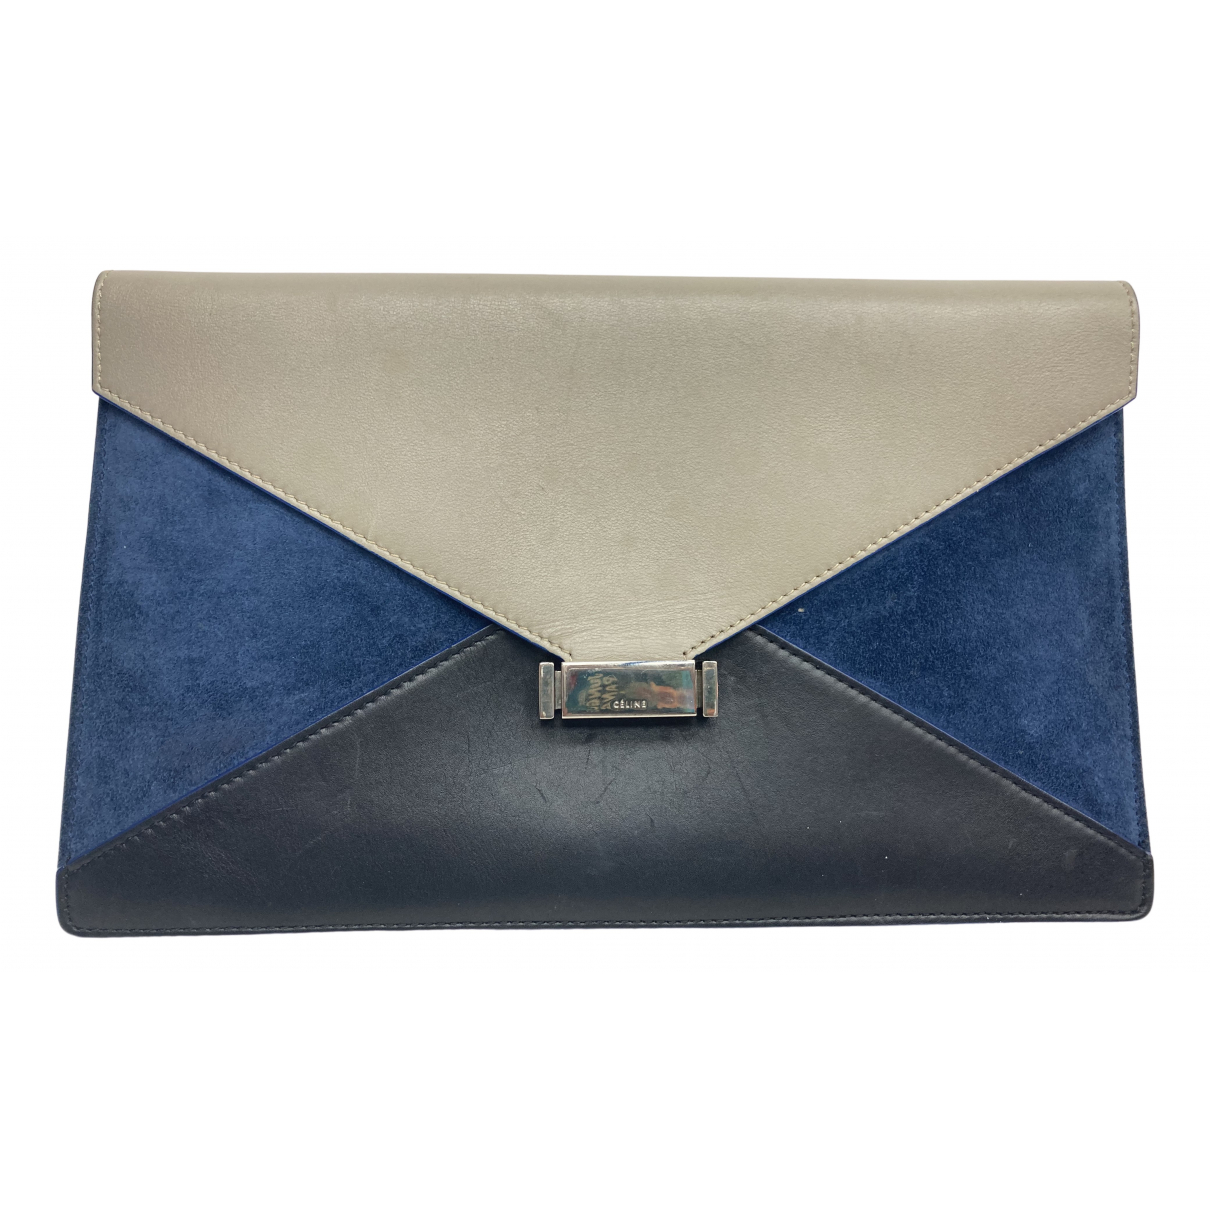 Celine Diamond Clutch Clutch in  Bunt Leder